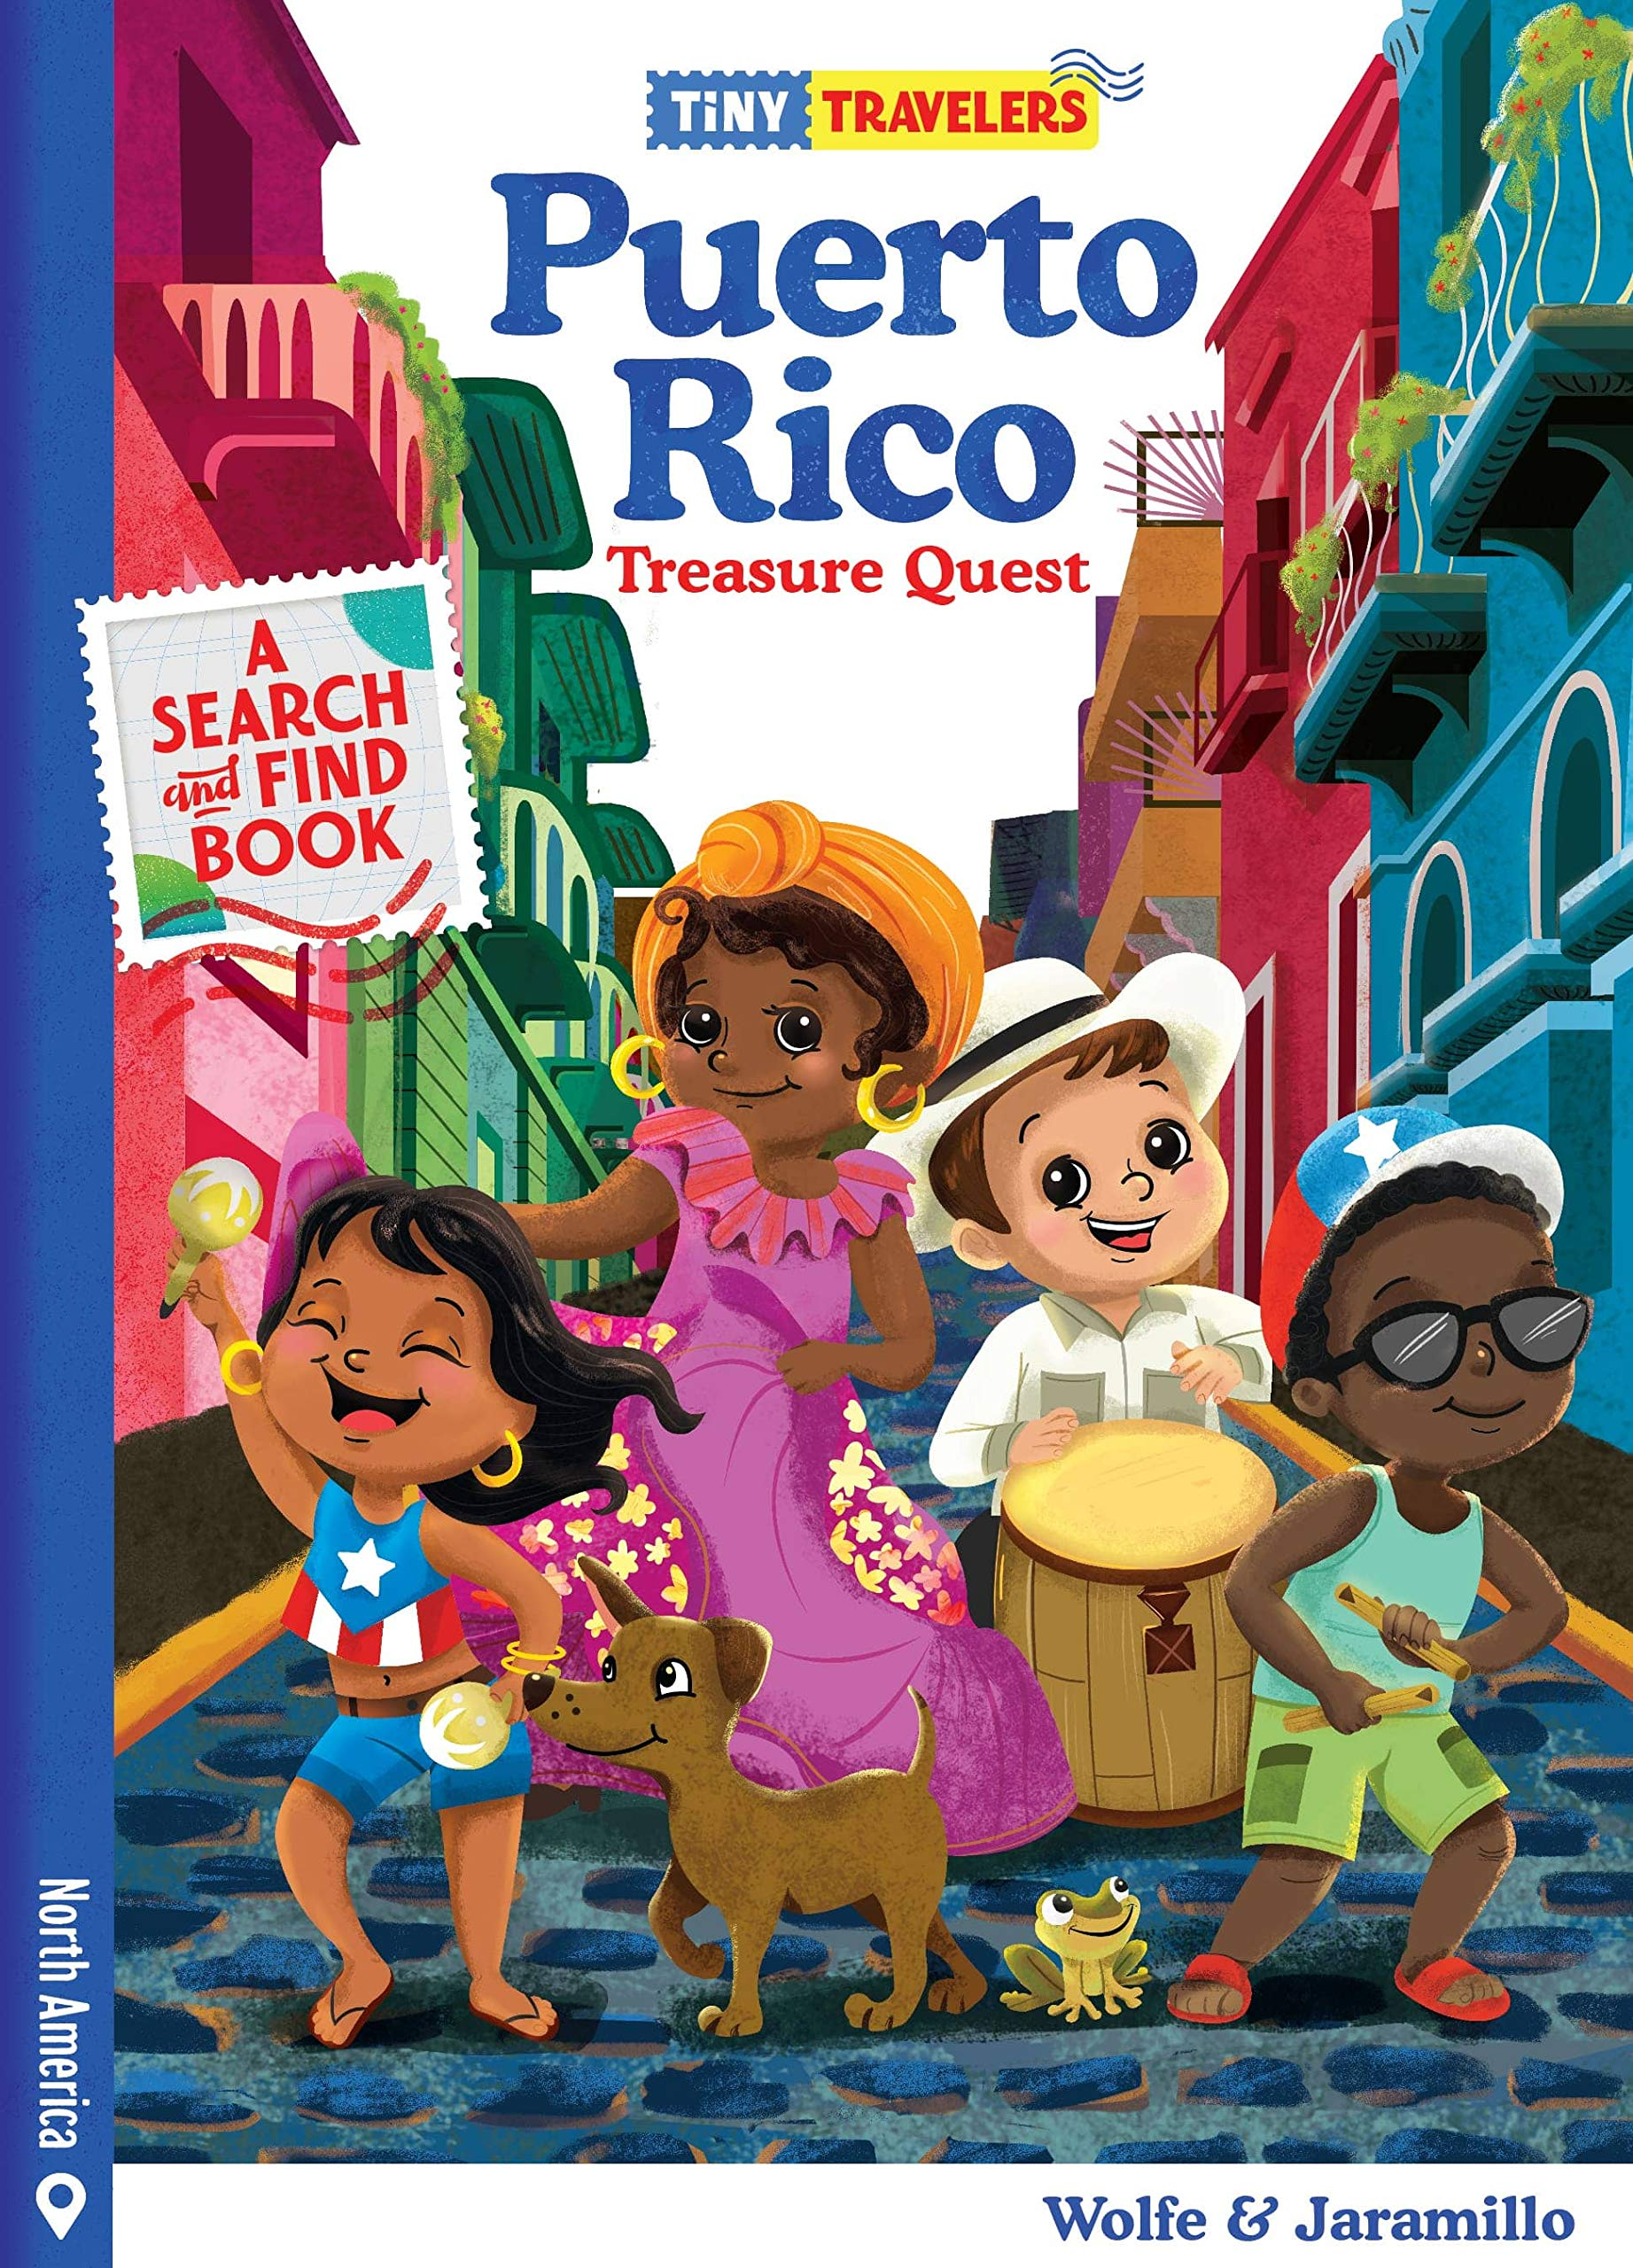 celebrate-picture-books-picture-book-review-tiny-travelers-puerto-rico-cover